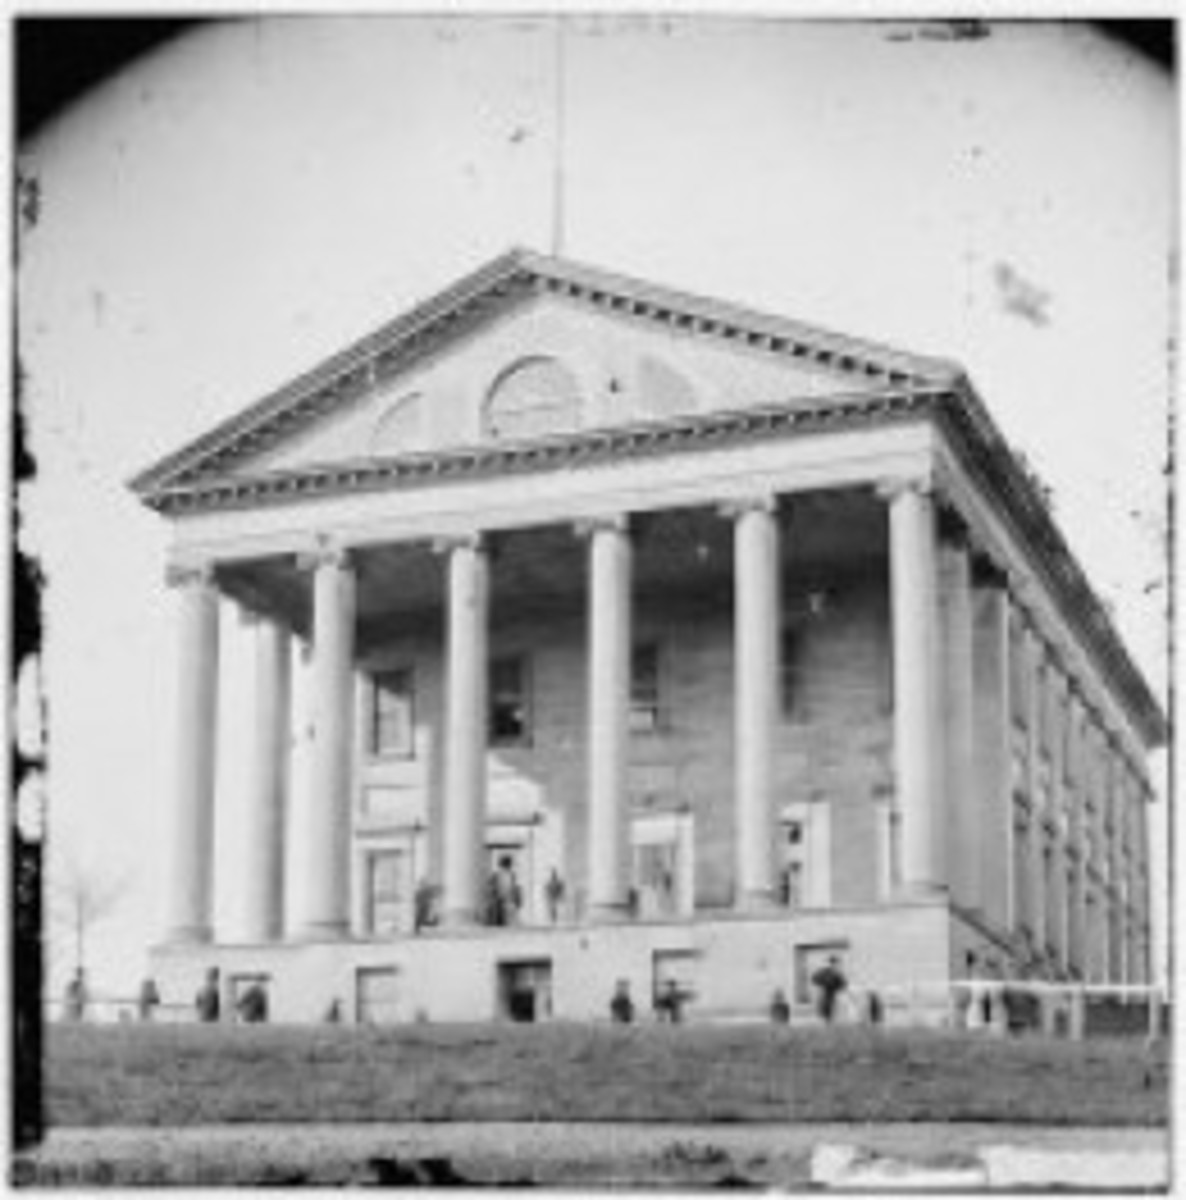 Montgomery, AL becomes the capitol of the Confederate States of America